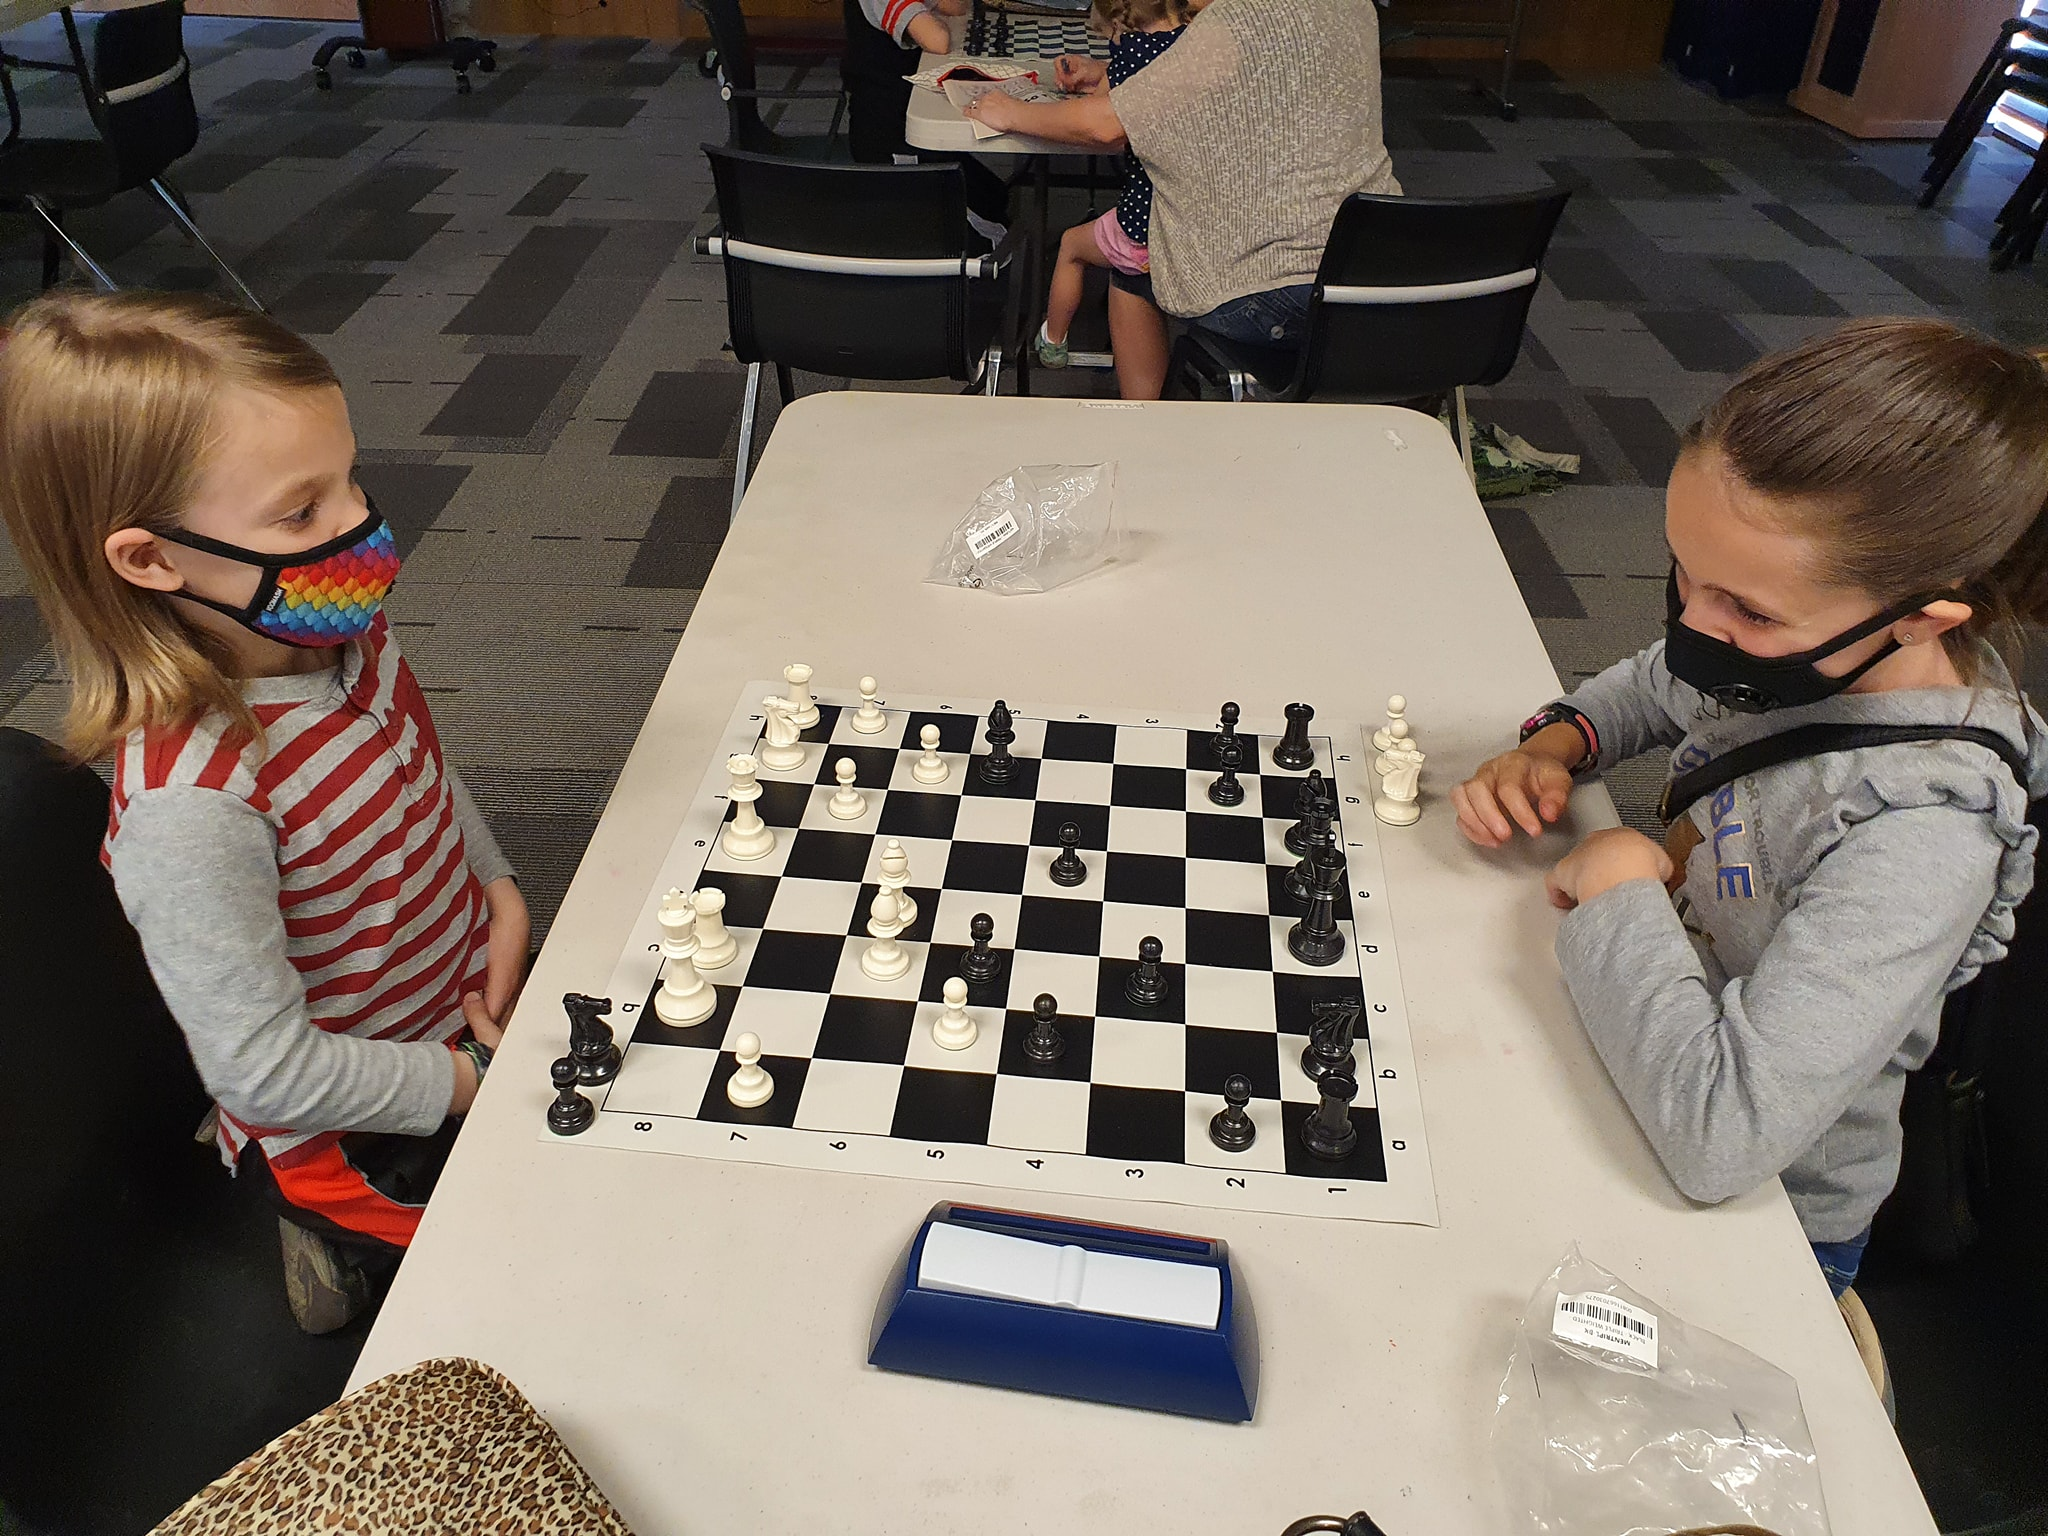 Playing chess at MWR